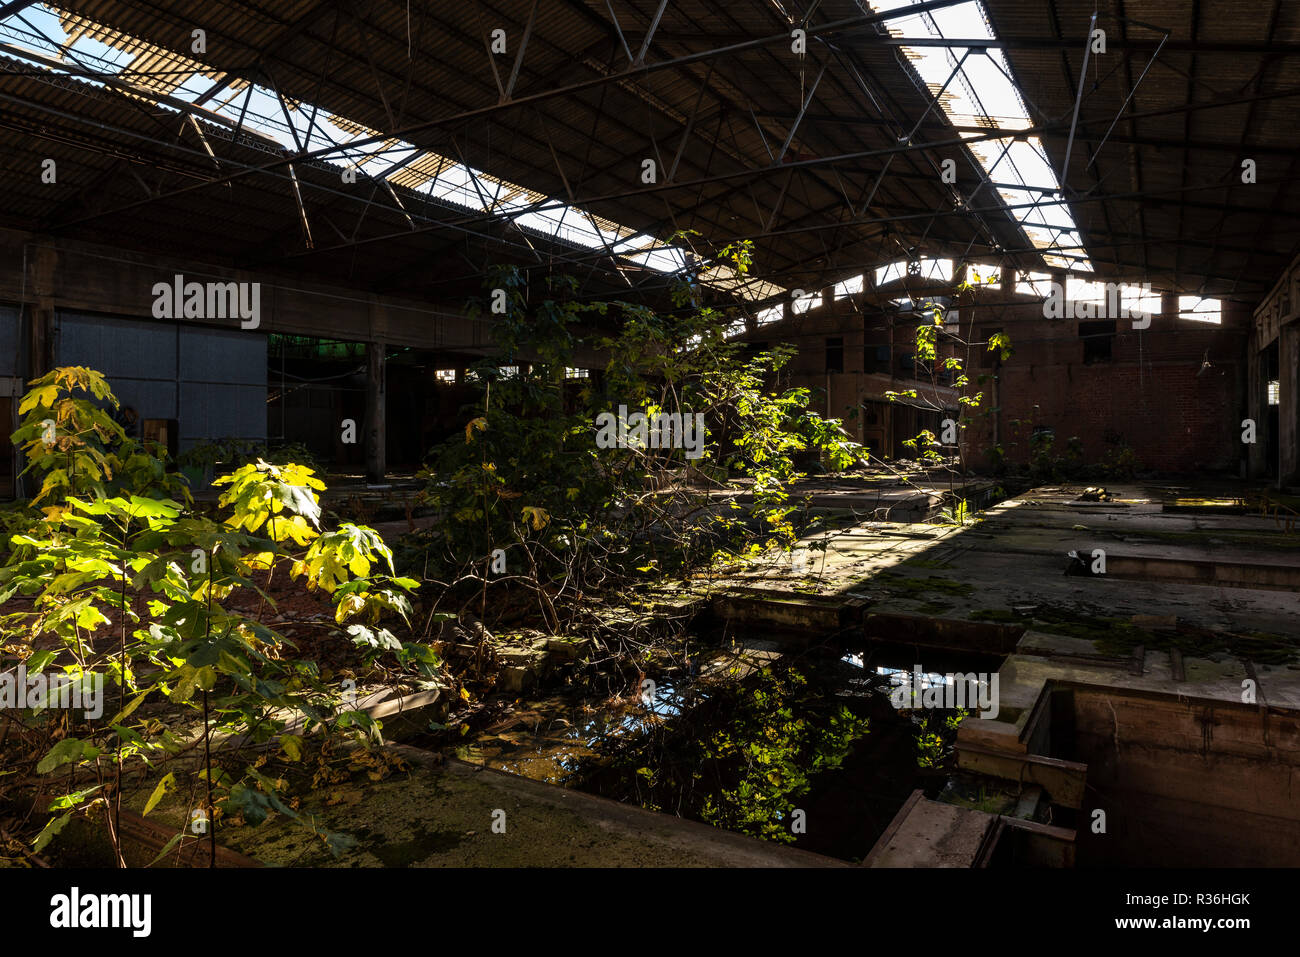 spontaneous natural growth in abandoned factory - Stock Image